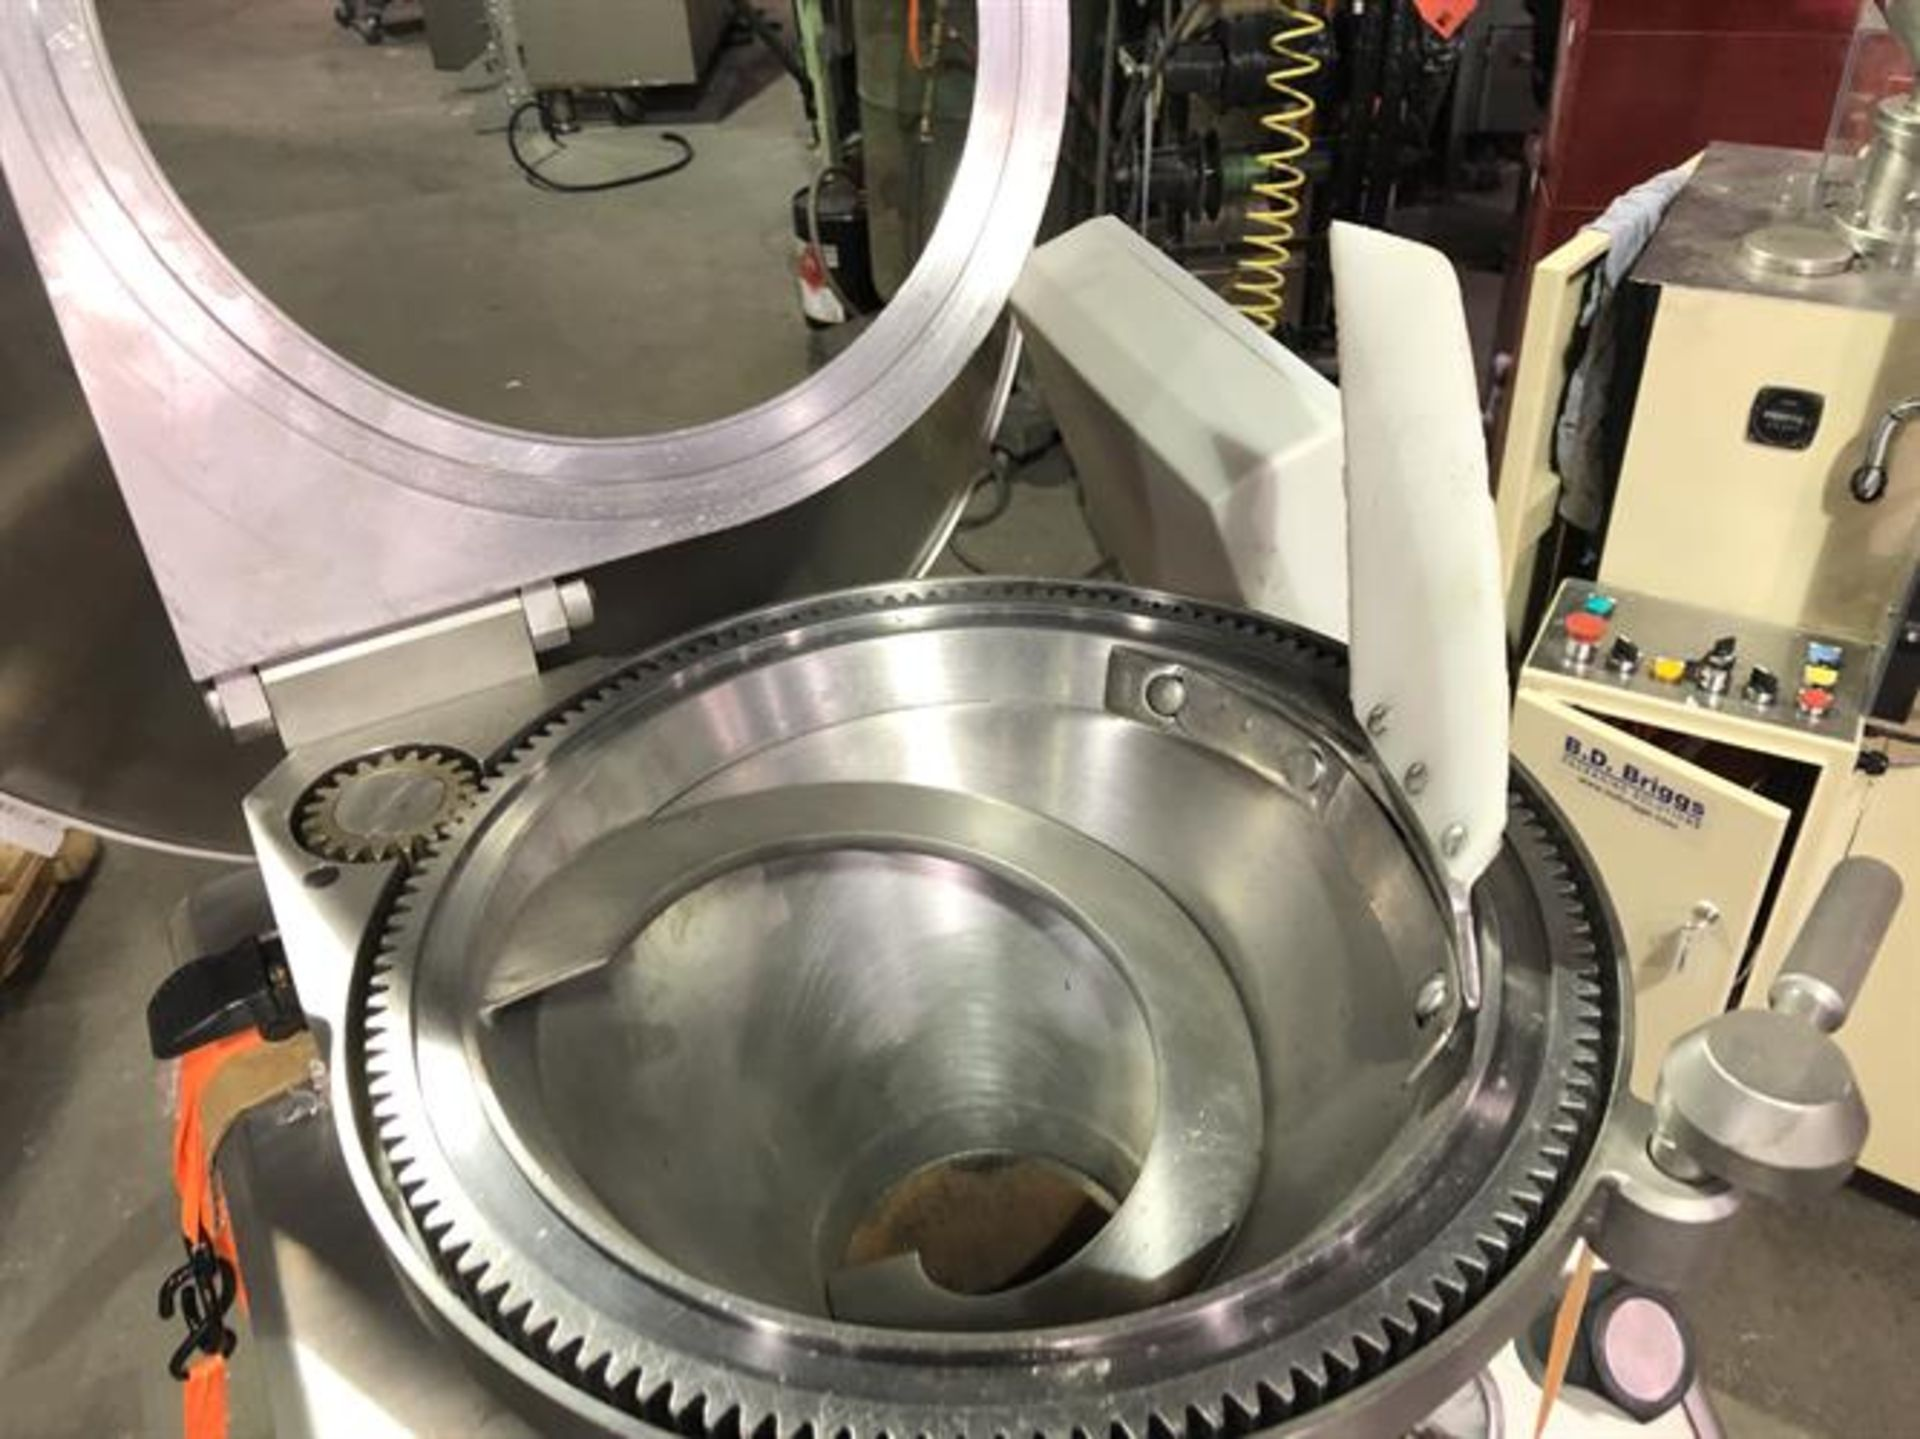 Vemag Robot 500 Stainless Steel Vacuum Stuffer - Machine has been completely reconditioned - PC - Image 20 of 31